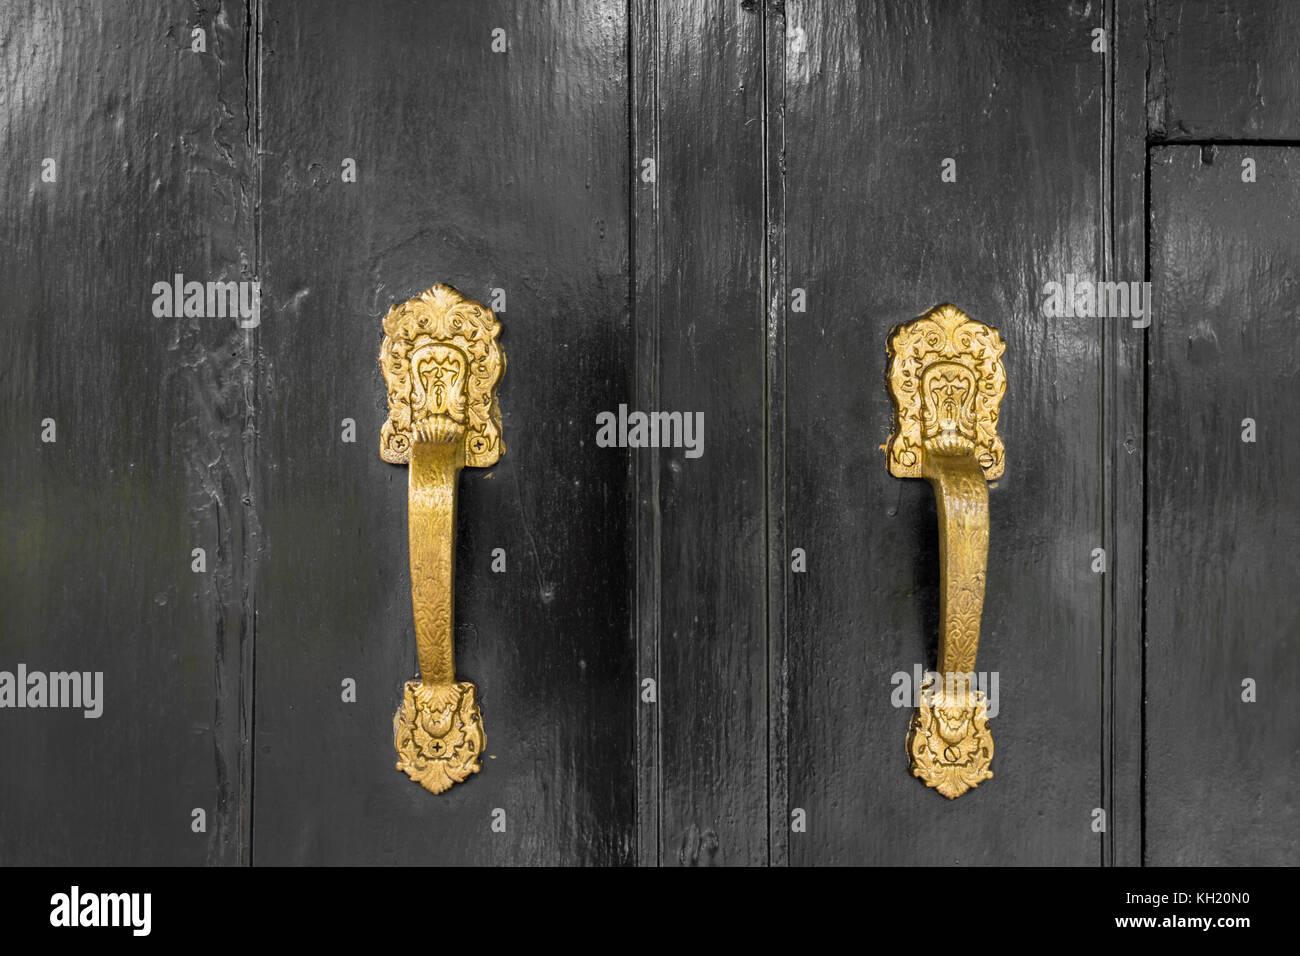 gold colored handle on black doors - Stock Image